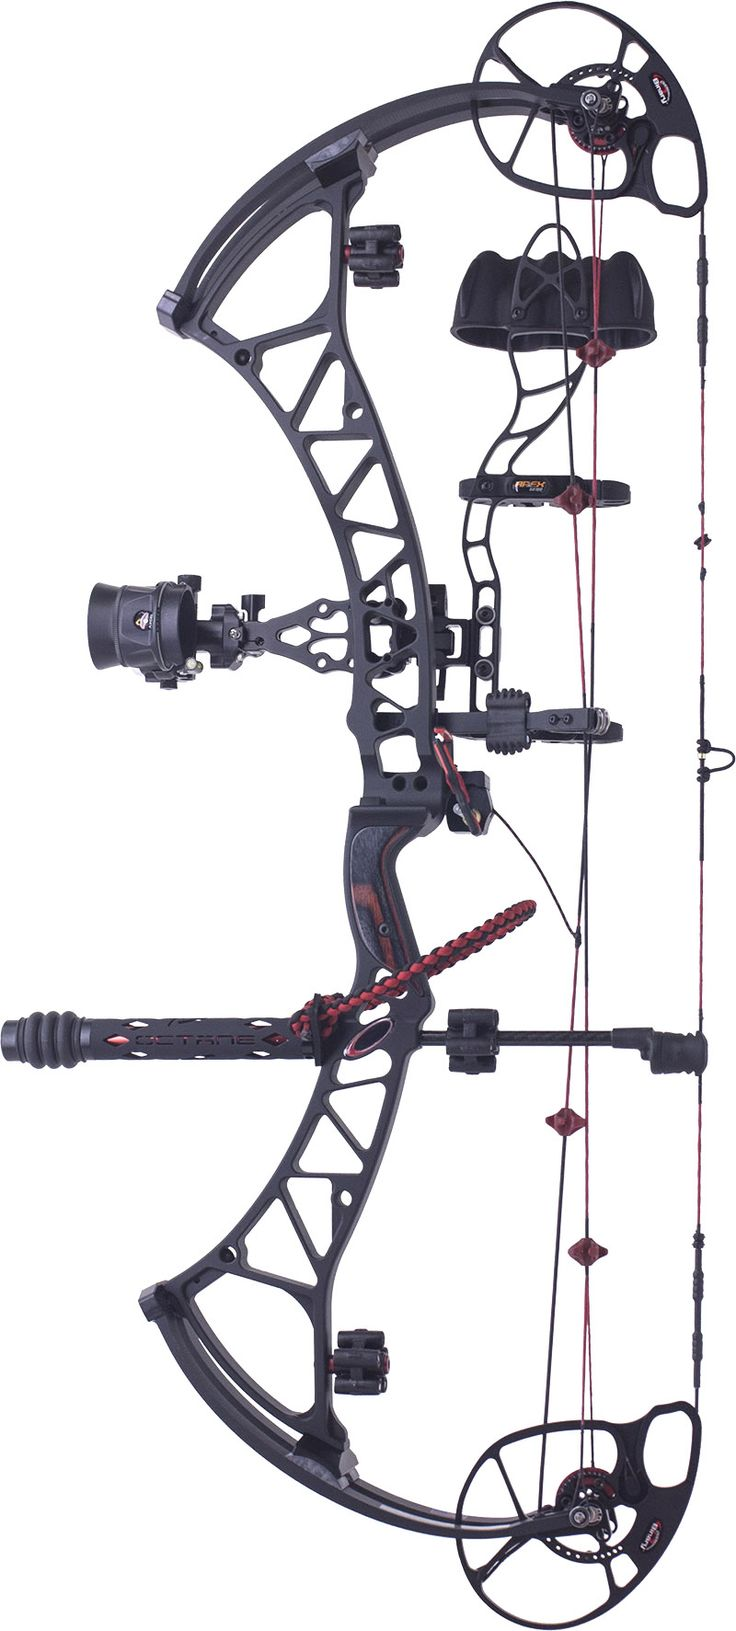 bowtech experience black ops package. Definitely the main bow I want just so expensive